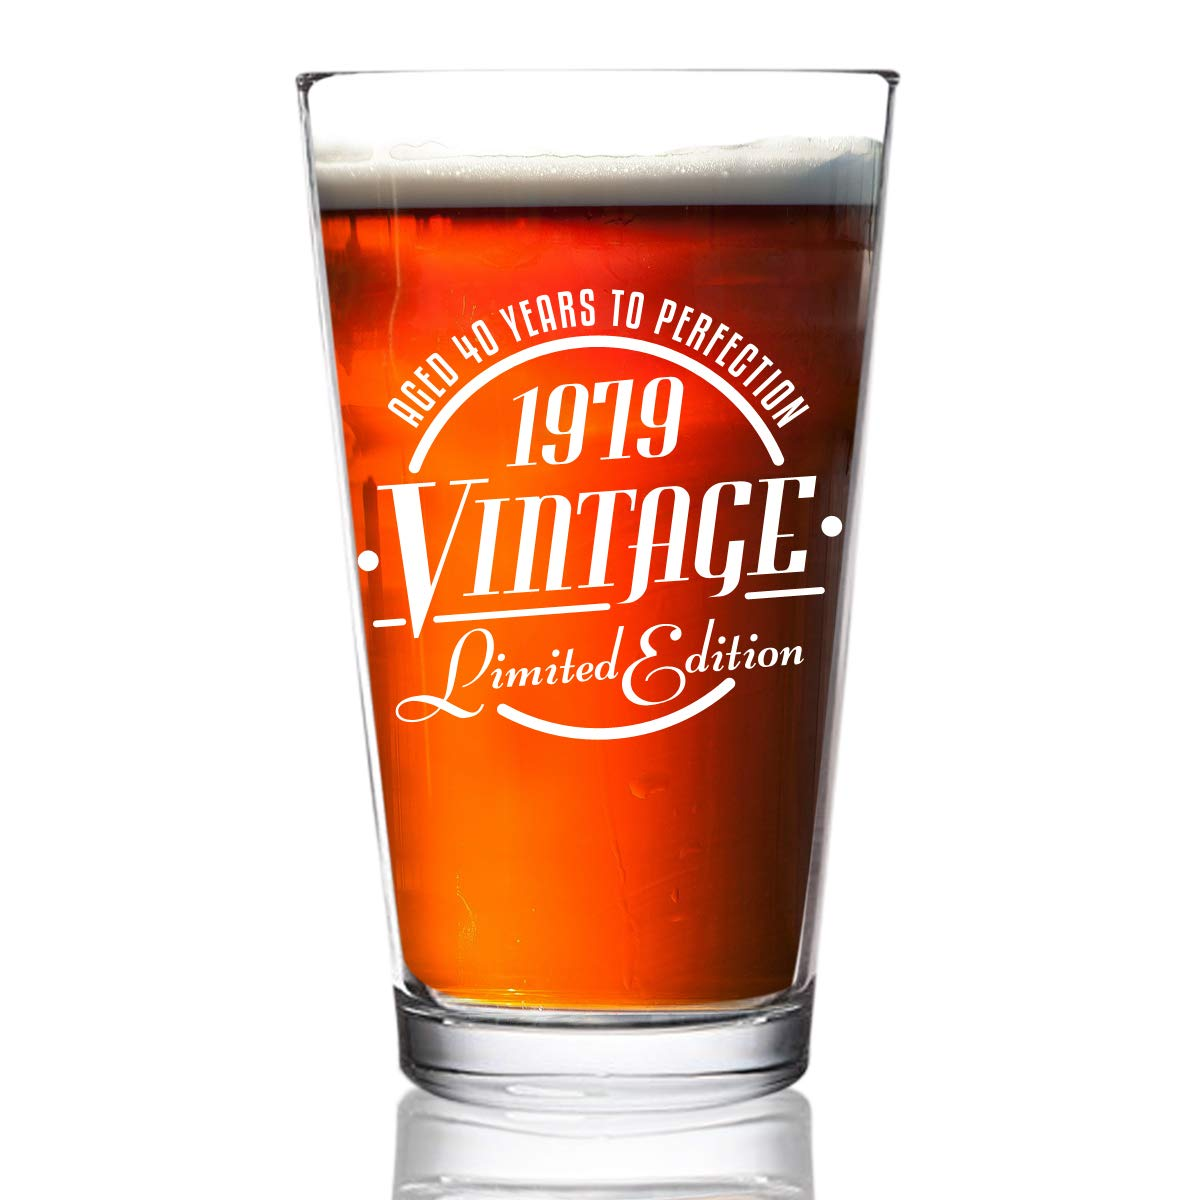 16 oz- Elegant Happy Birthday Pint Beer Glasses for Craft Beer Classic Birthday Gift 40th Anniversary 1979 Vintage Edition 40th Birthday Beer Glass for Men and Women Reunion Gift for Him or Her